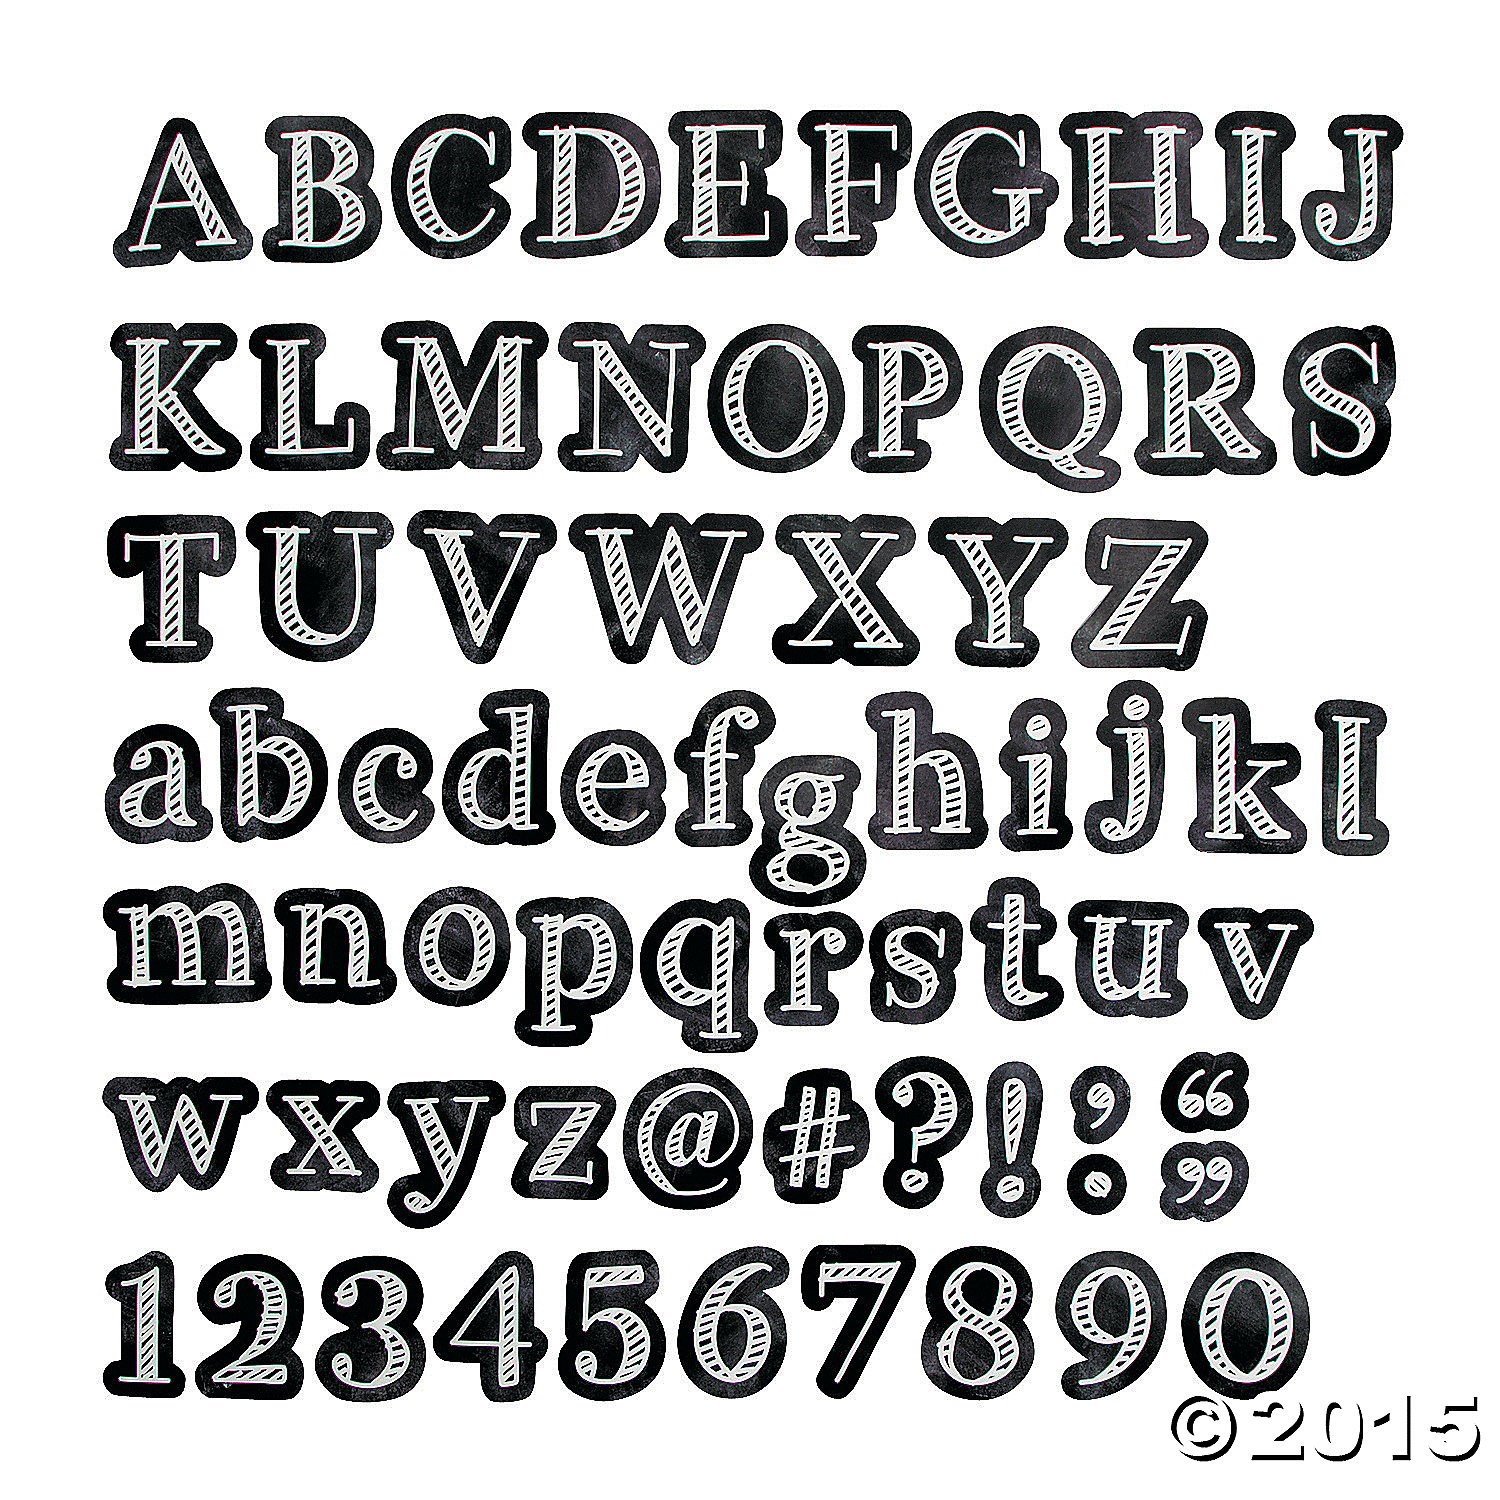 picture about Bulletin Board Letters Printable identified as Chalkboard Bulletin Board Letters - 211 computer systems. Bash Materials